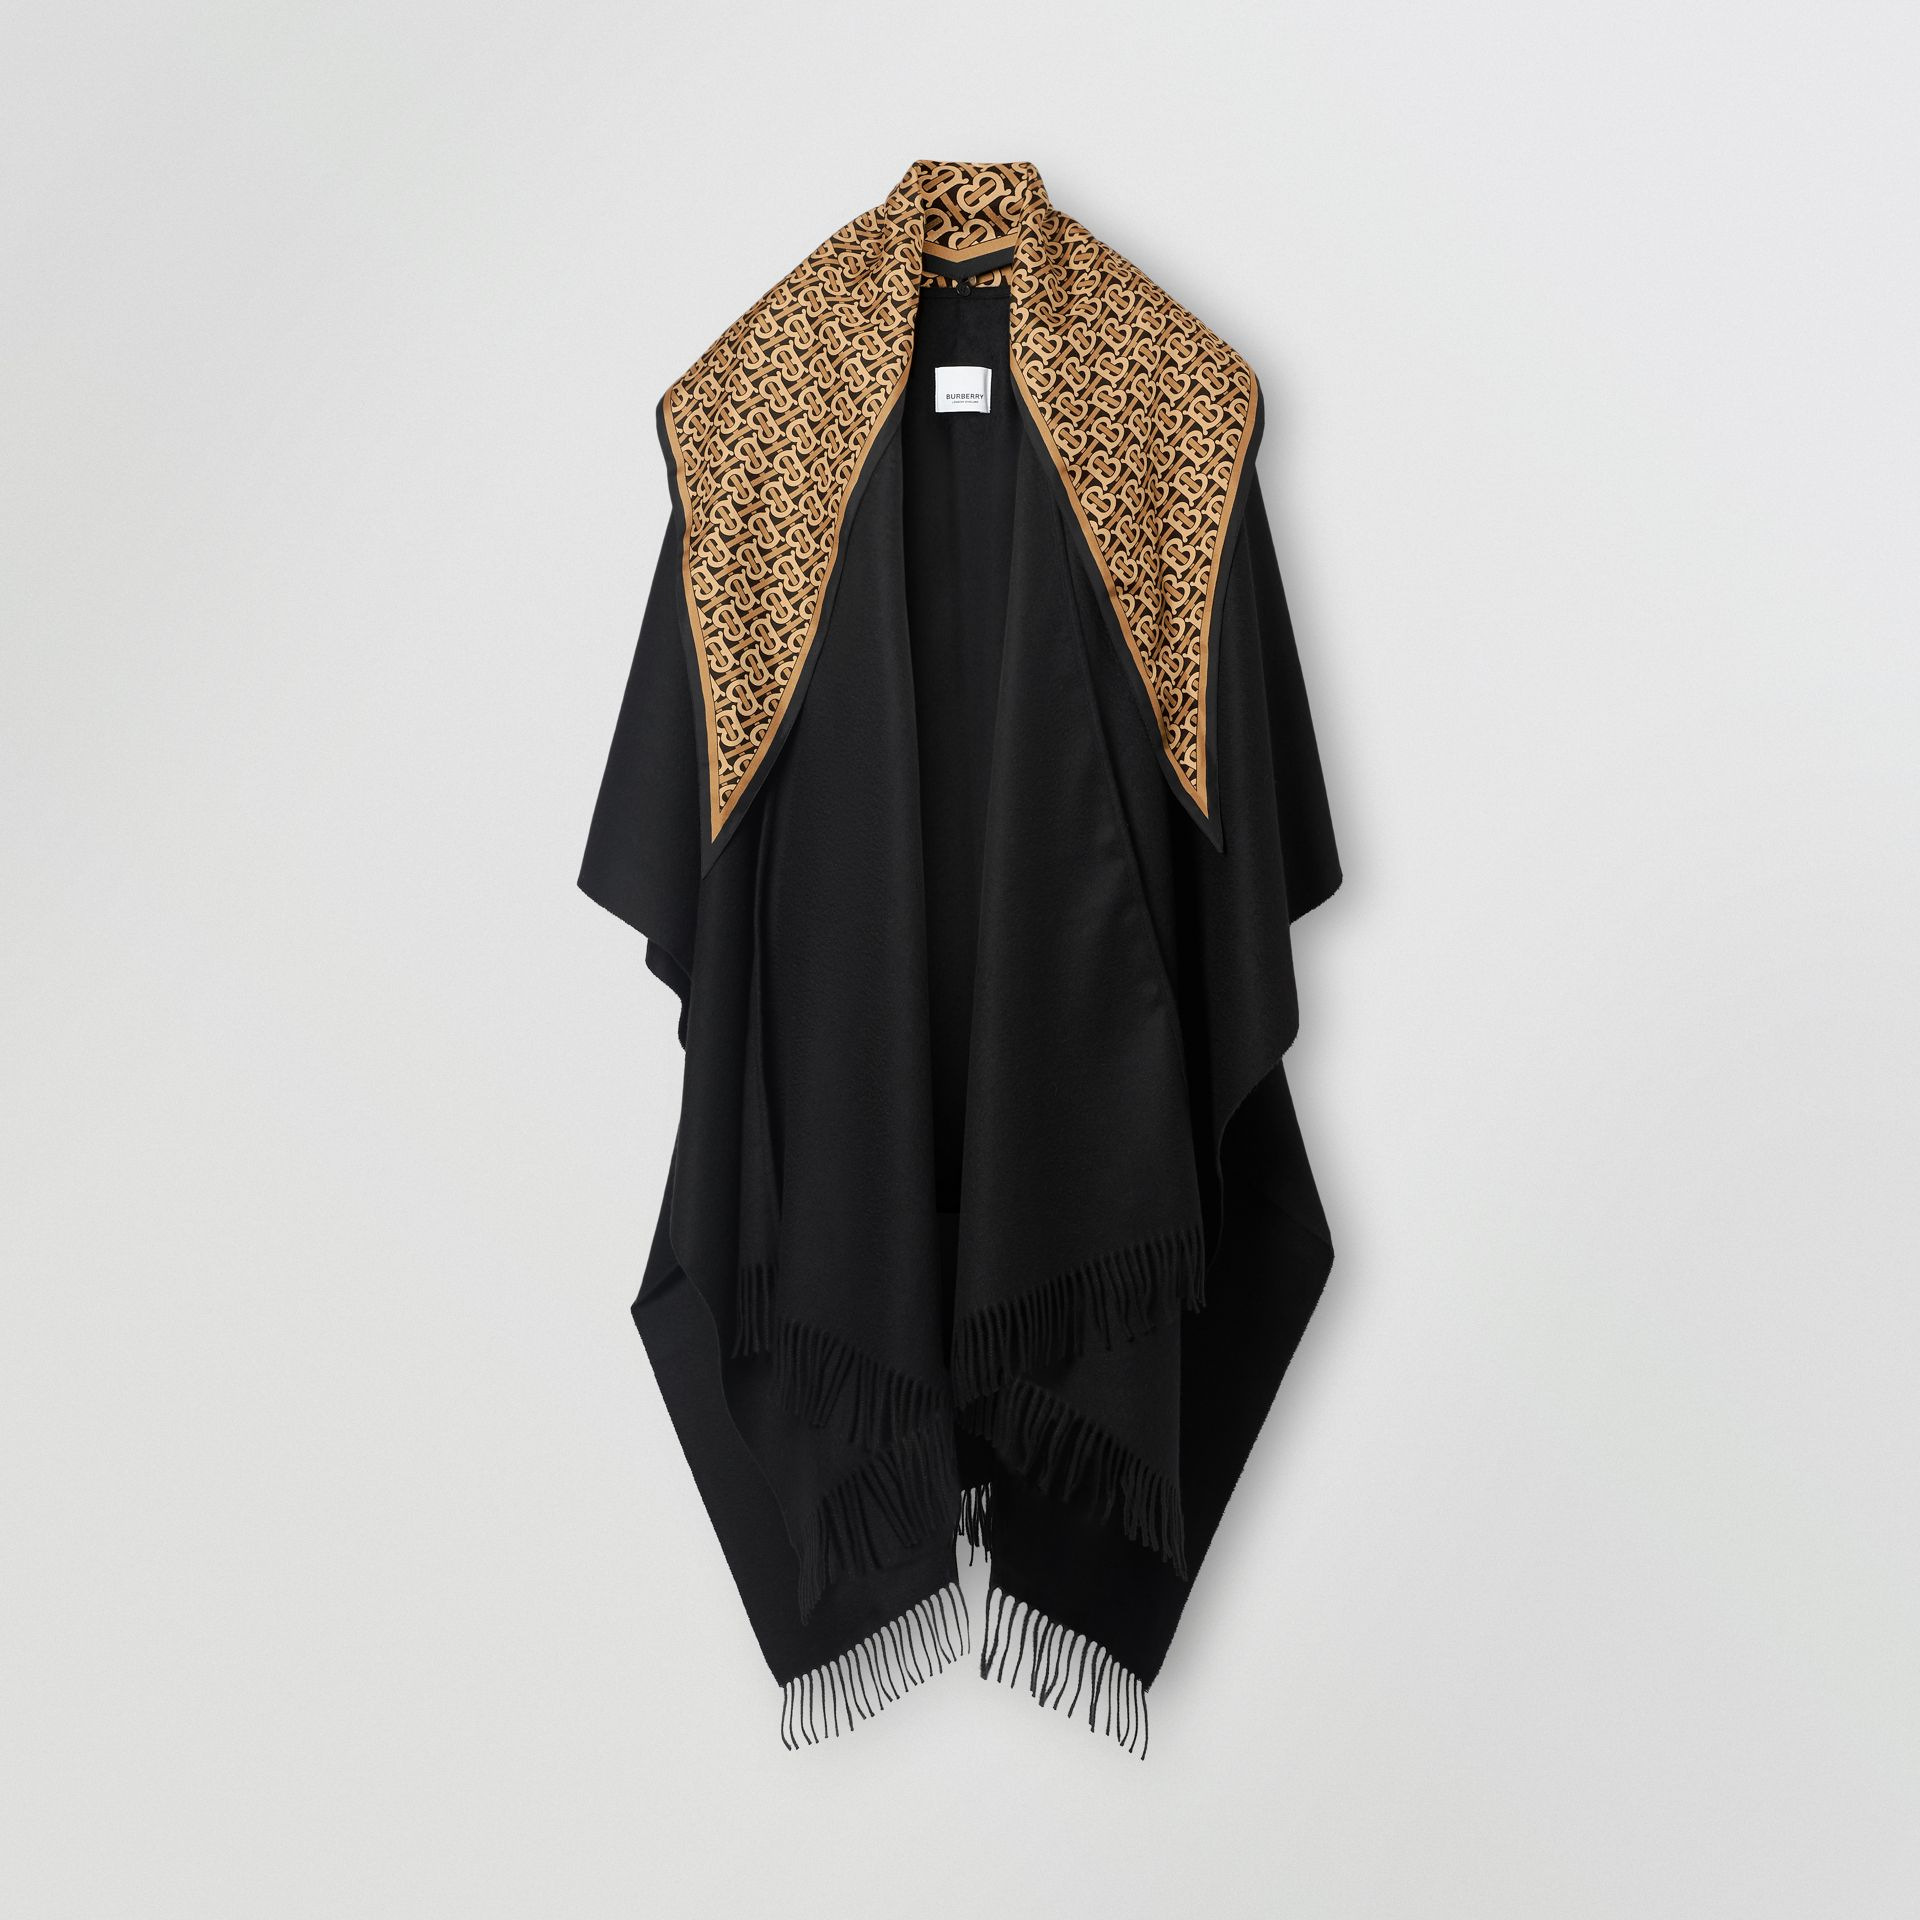 Detachable Monogram Print Scarf Cashmere Cape in Black - Women | Burberry - gallery image 3